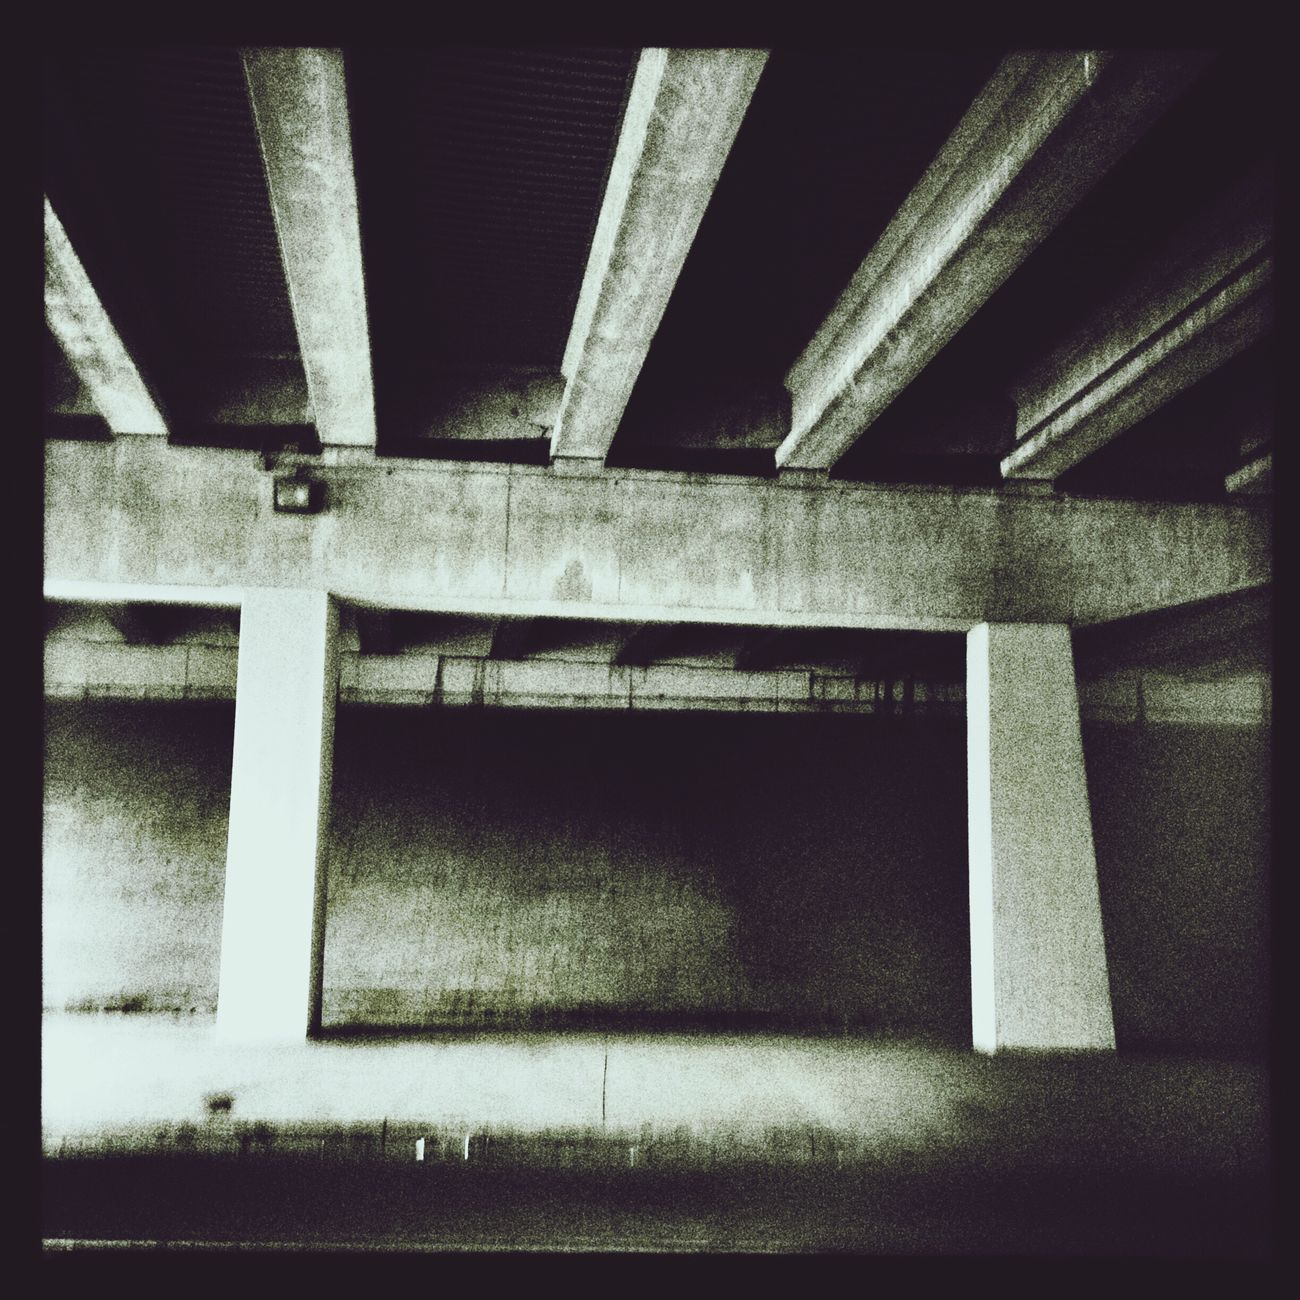 Christian Street under Interstate-95 in Philadelphia. Cityscapes Philadelphia Blackandwhite